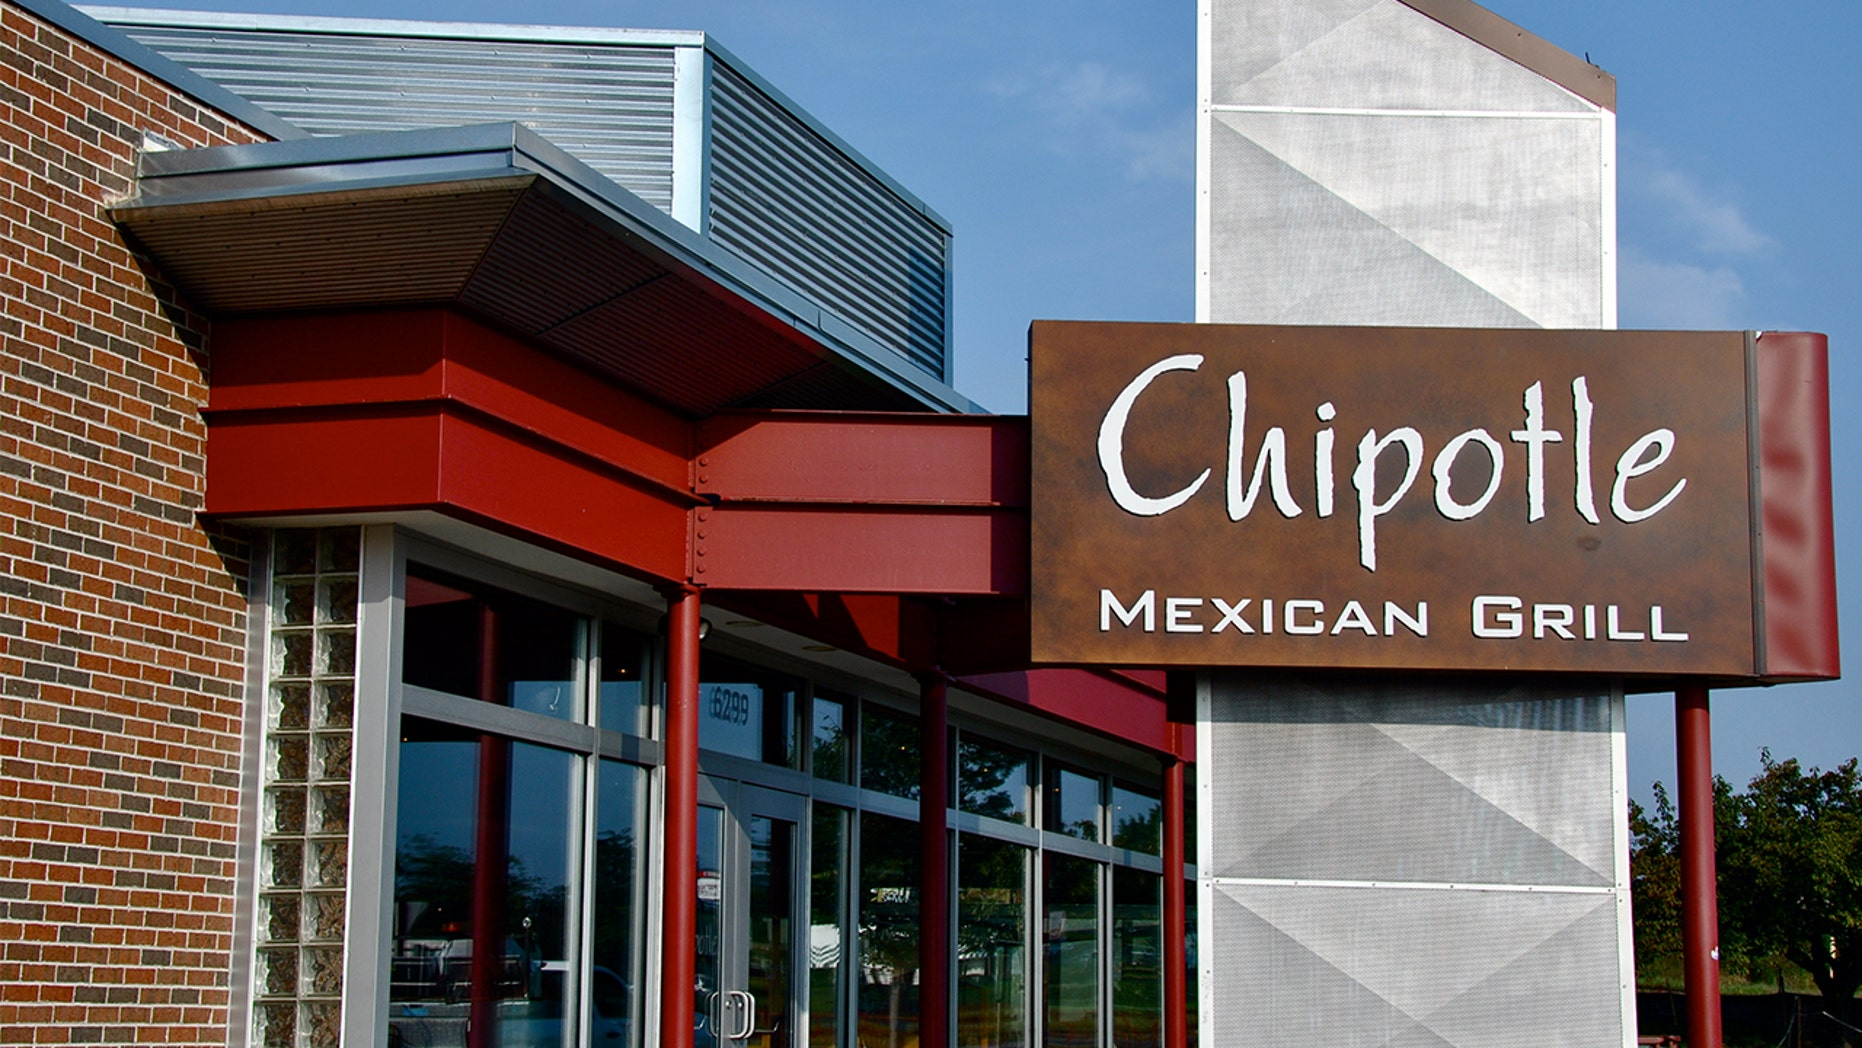 Chipotle is adding drive-thru lanes, but you won't actually be able to order food at them.